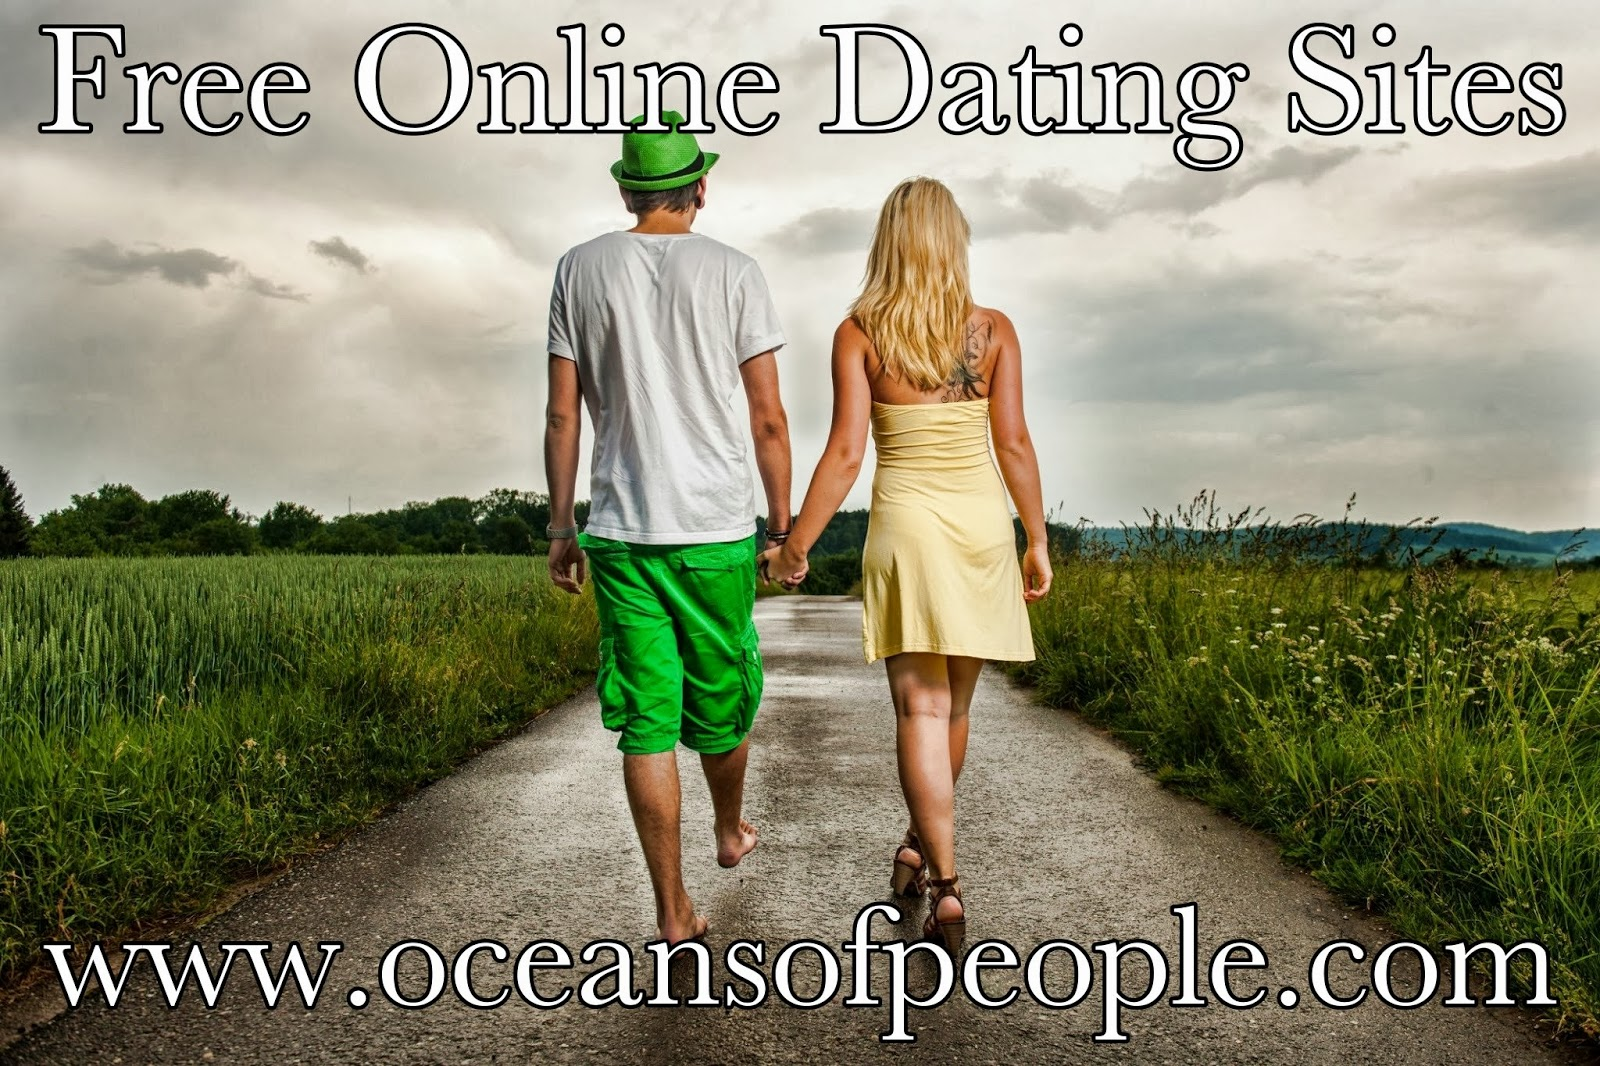 Free celibate dating sites